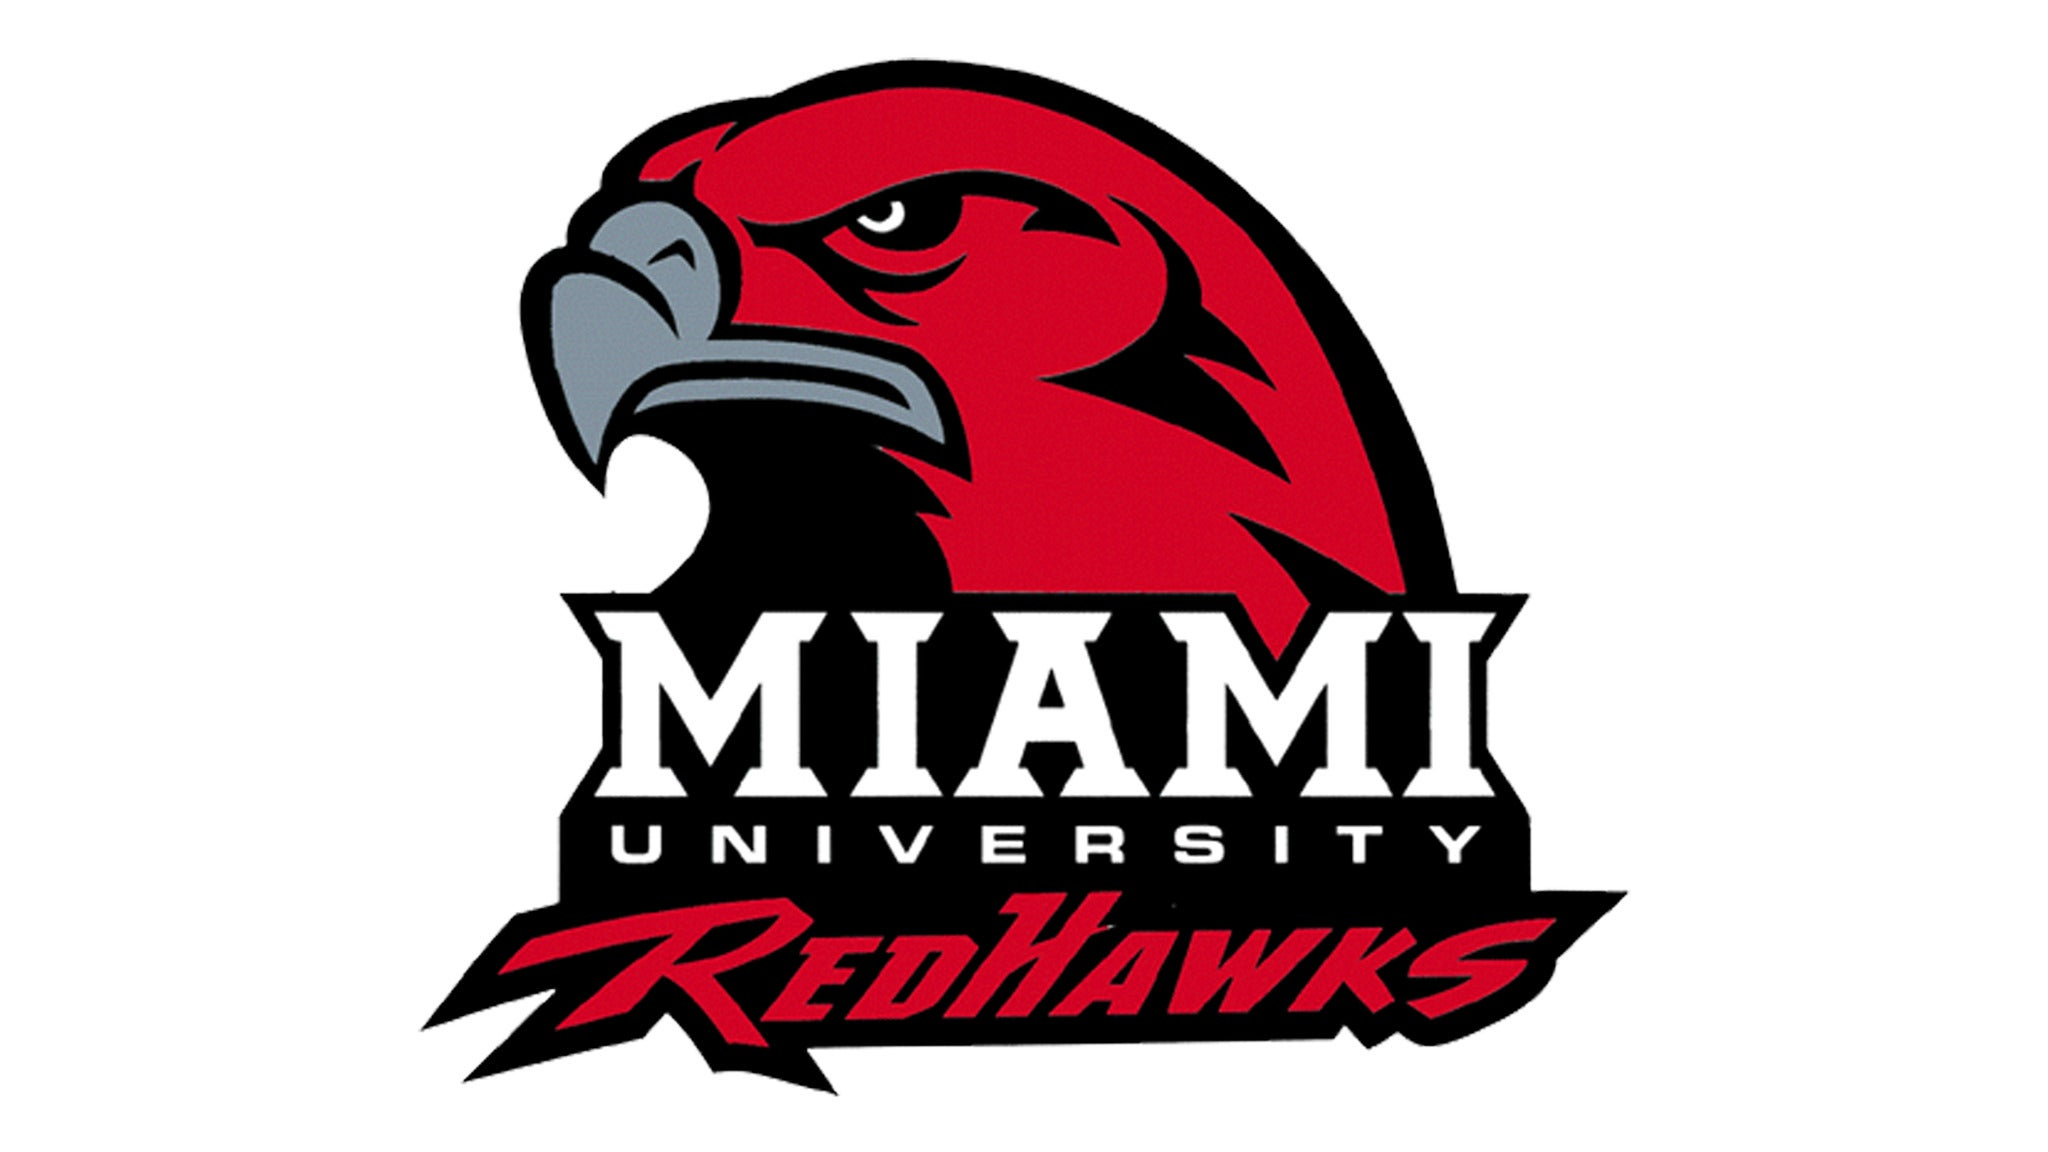 Miami University of Ohio Red Hawks Football